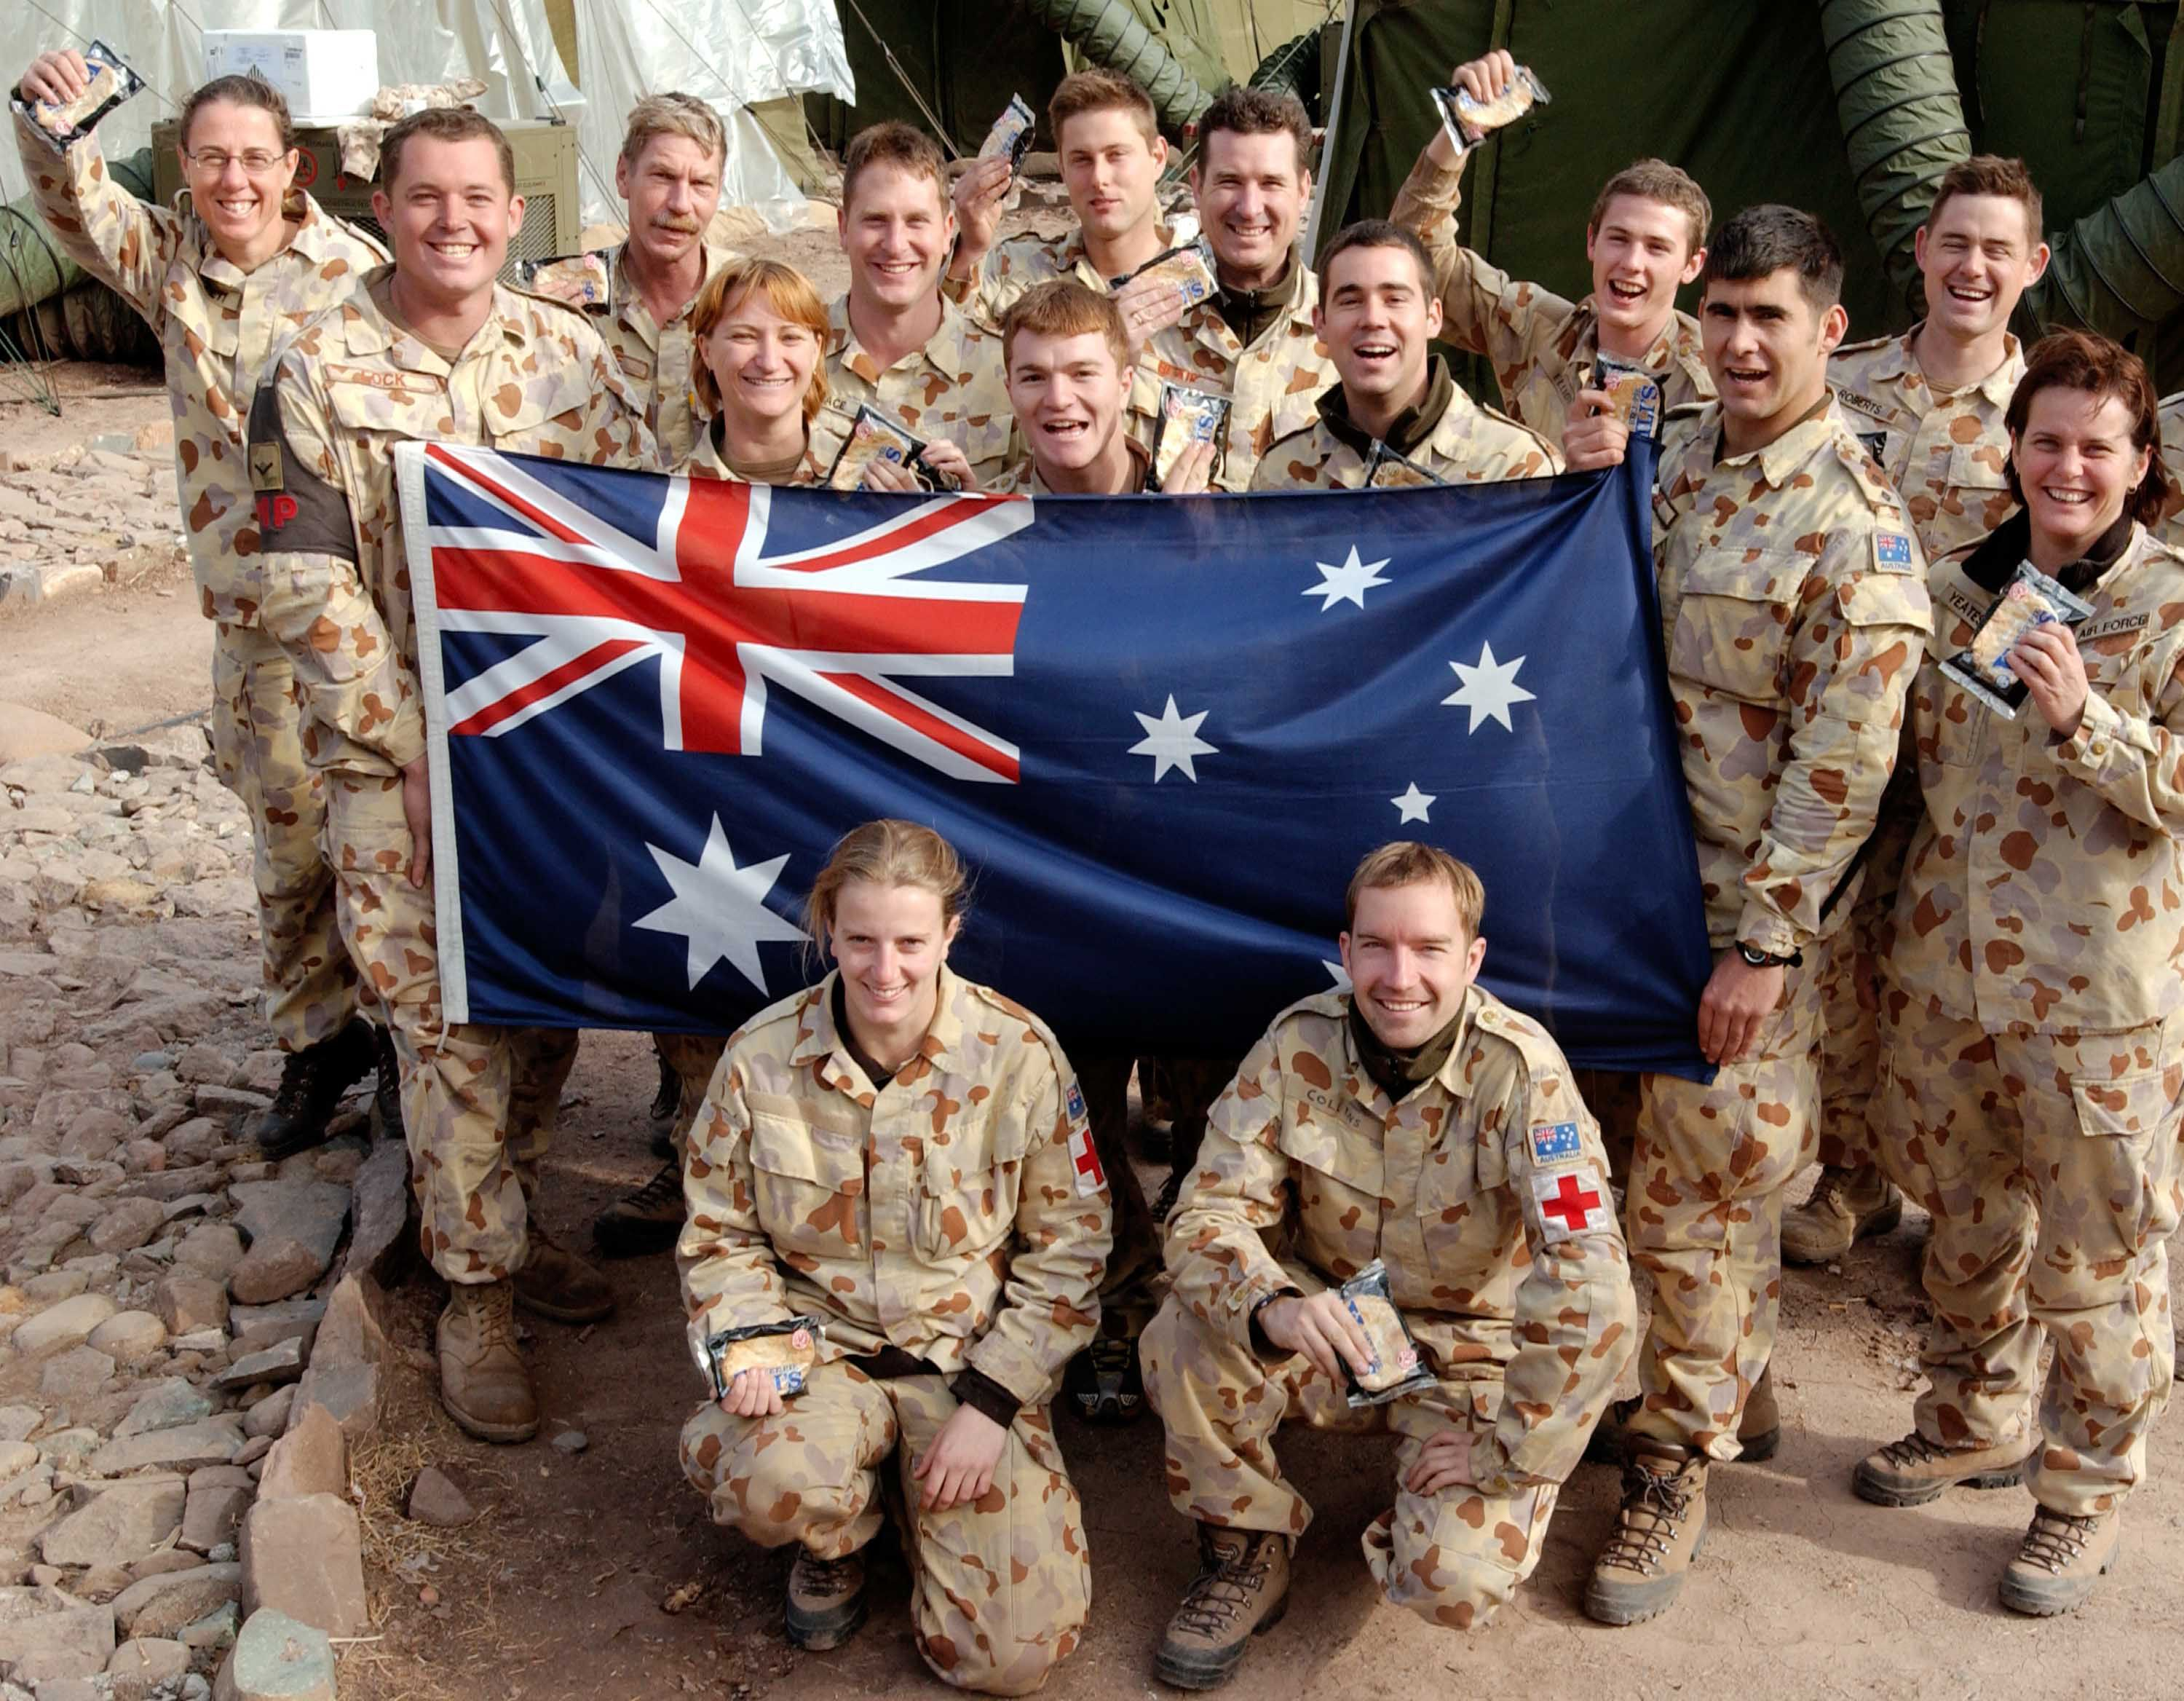 Military dating site in Australia